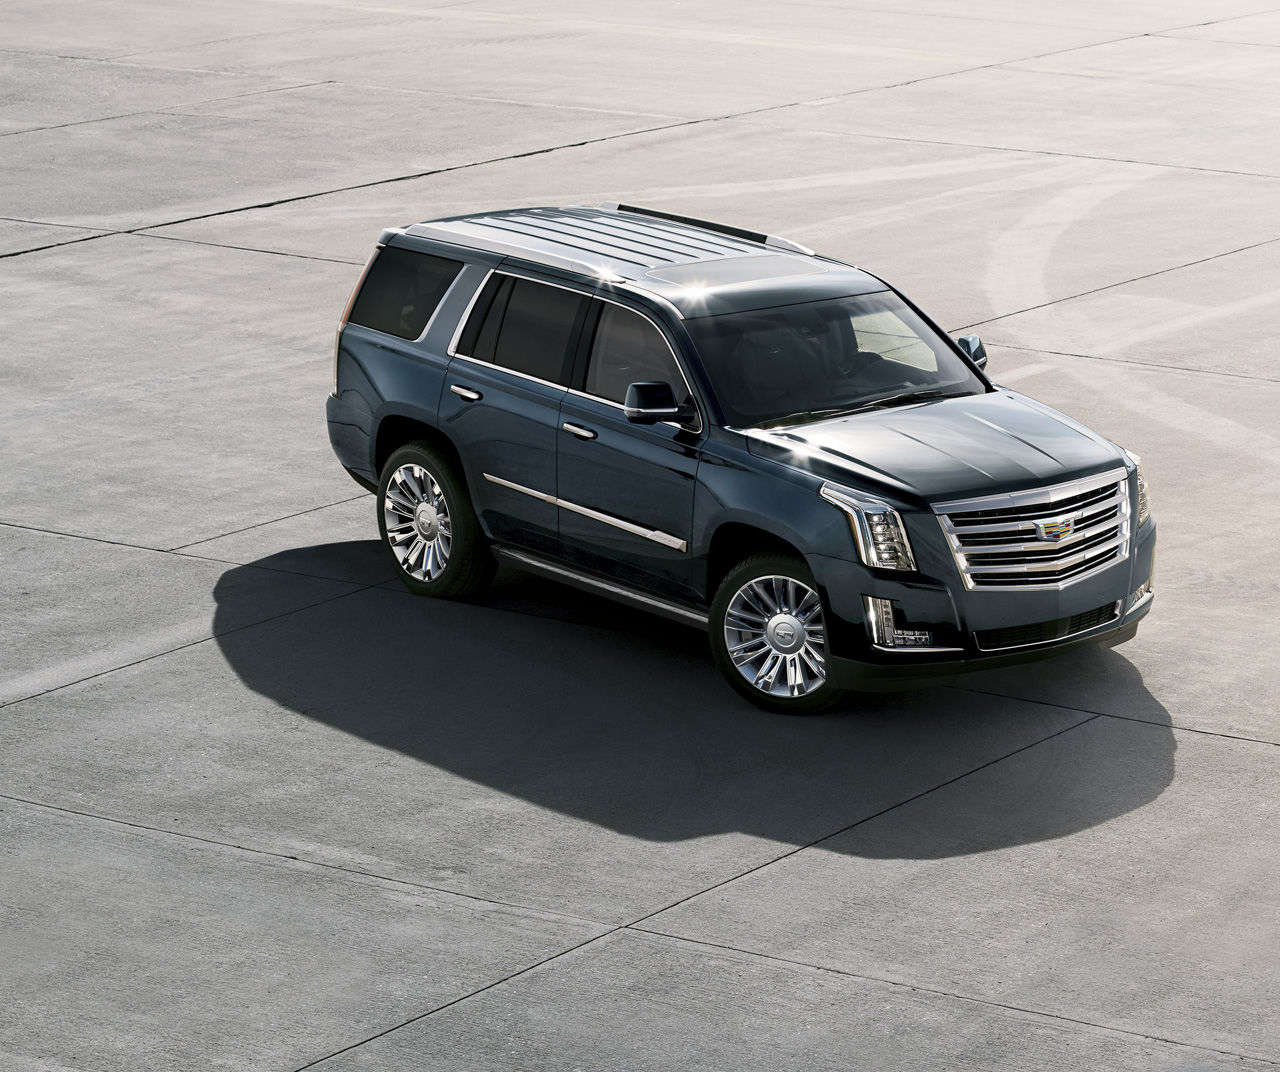 THE 2019 ESCALADE: REMARKABLY LIGHT ON ITS FEET